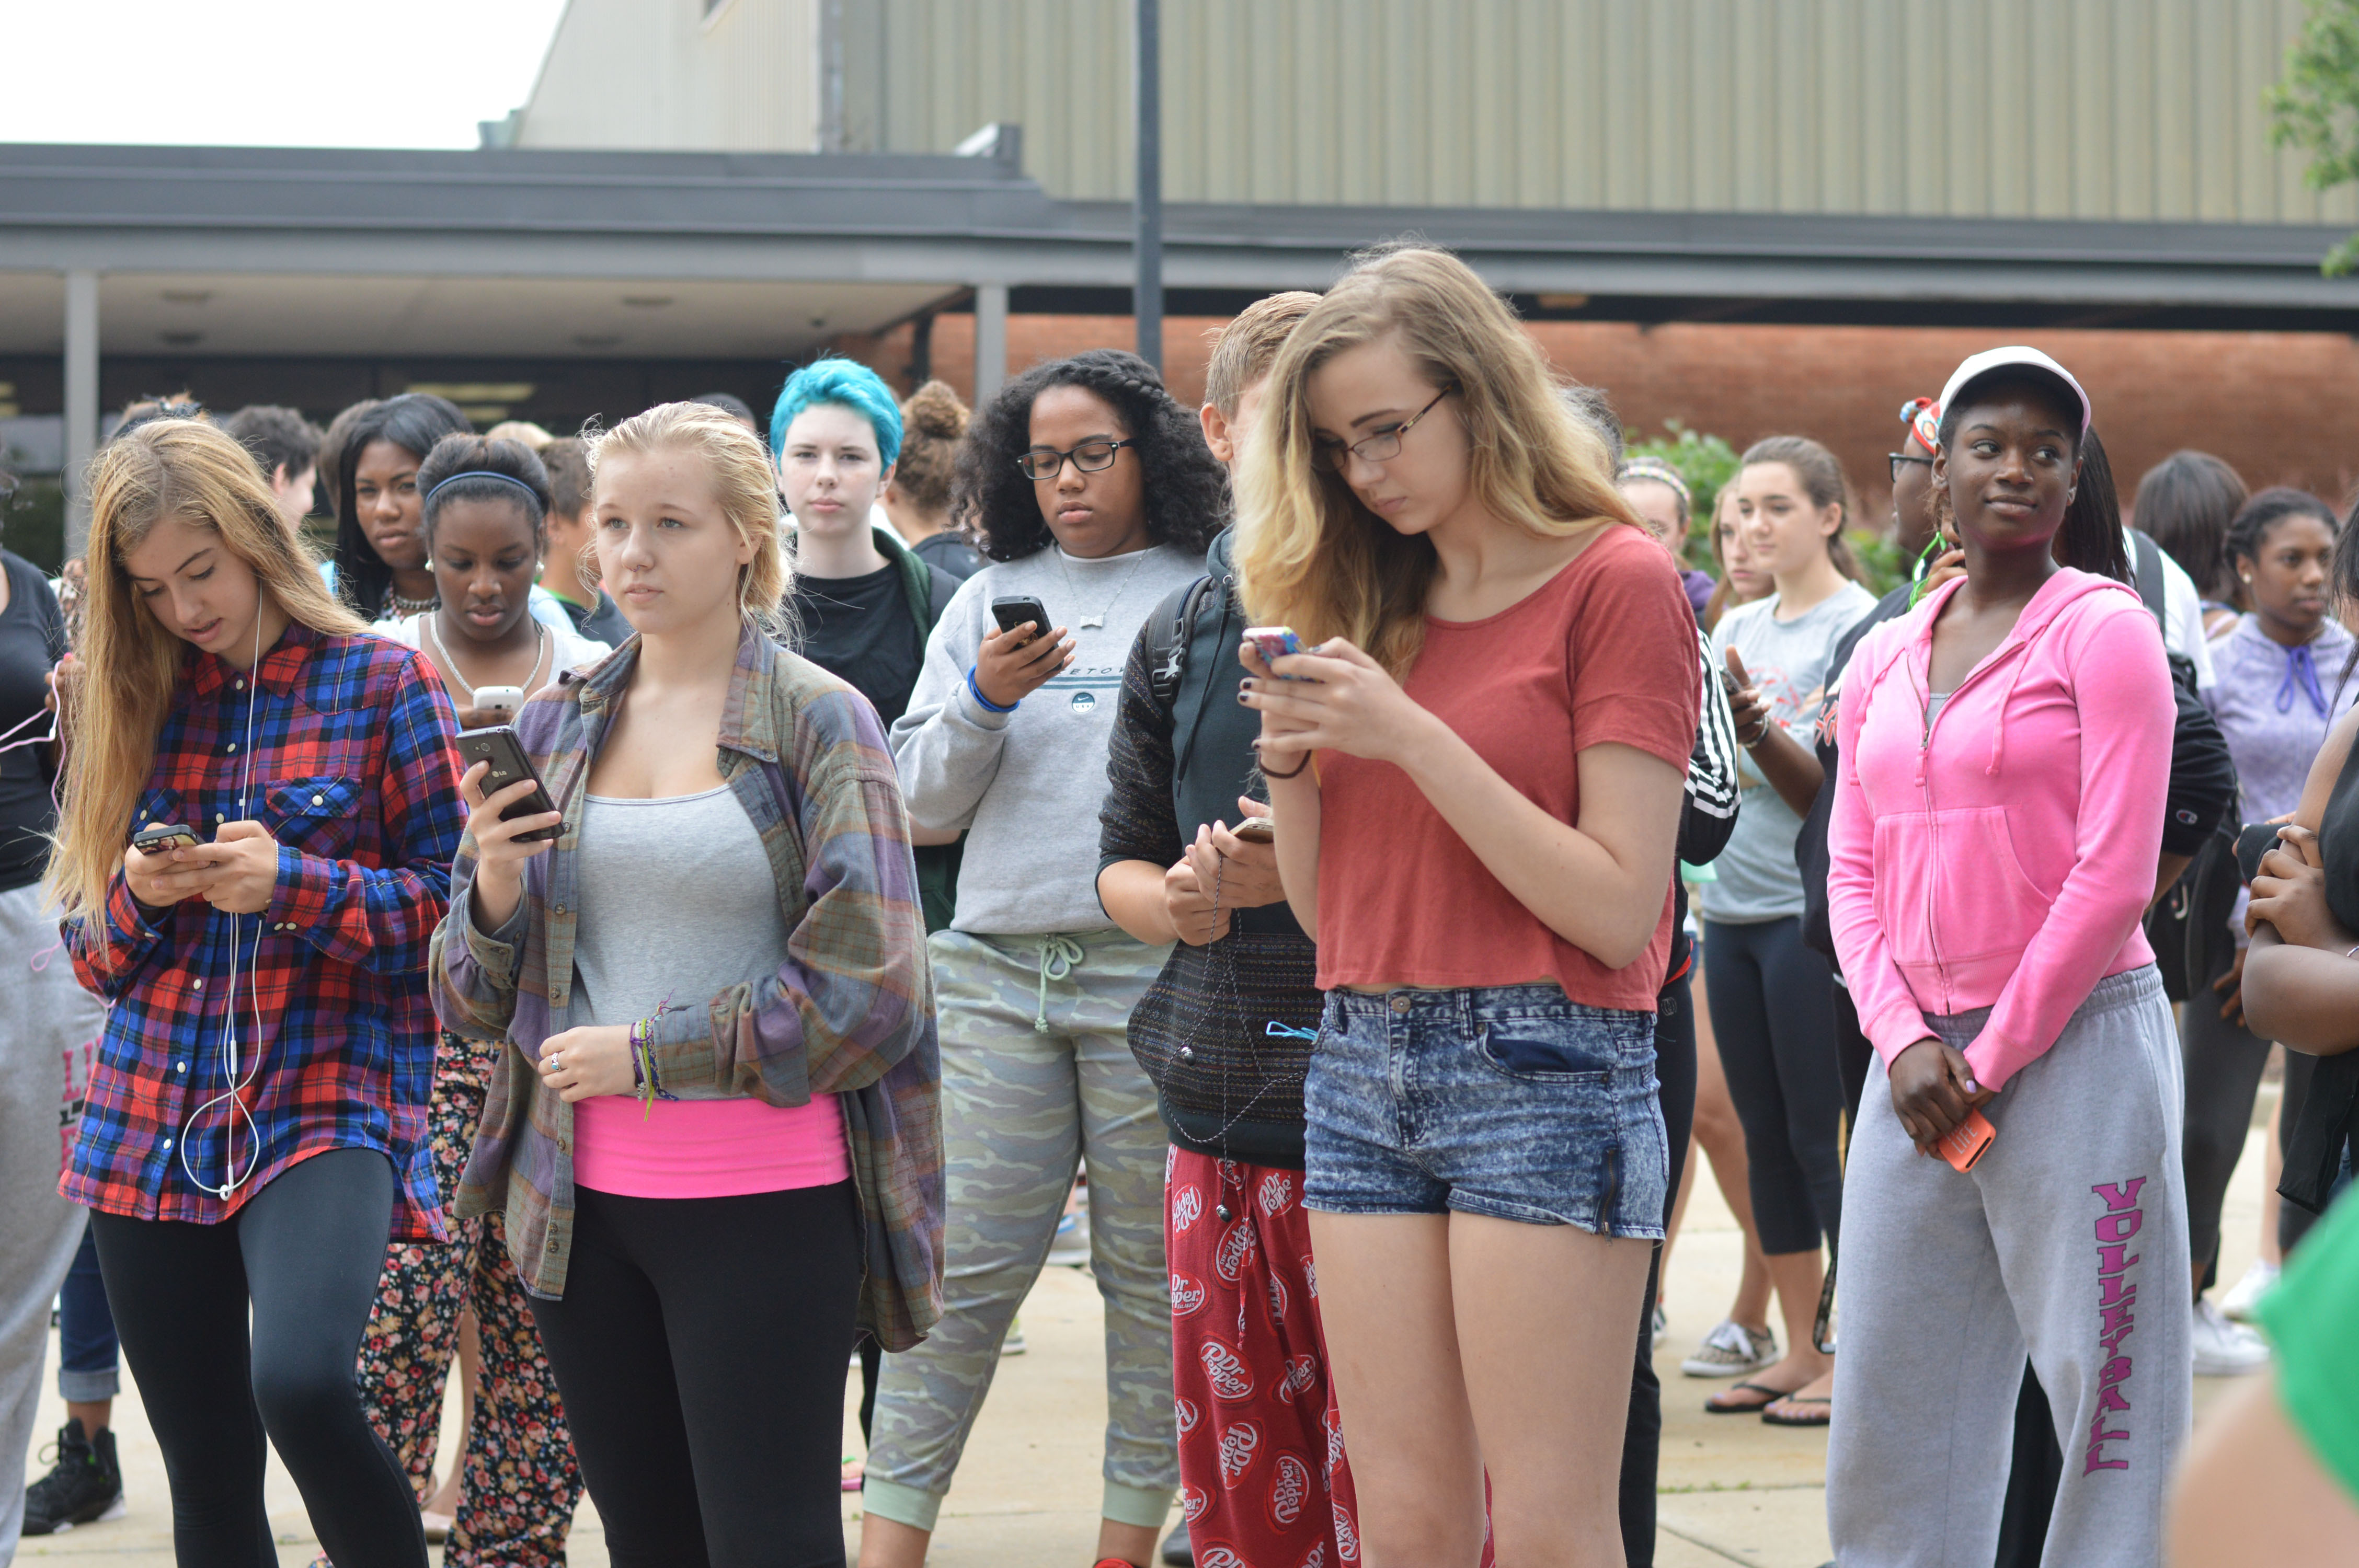 A group of protesters stand on their phones during the first walkout held on Sept. 10, outside of school by the flag pole. Students posted words of support on Twitter and Vines of the walkout on social media. Photo by Piper Rother.